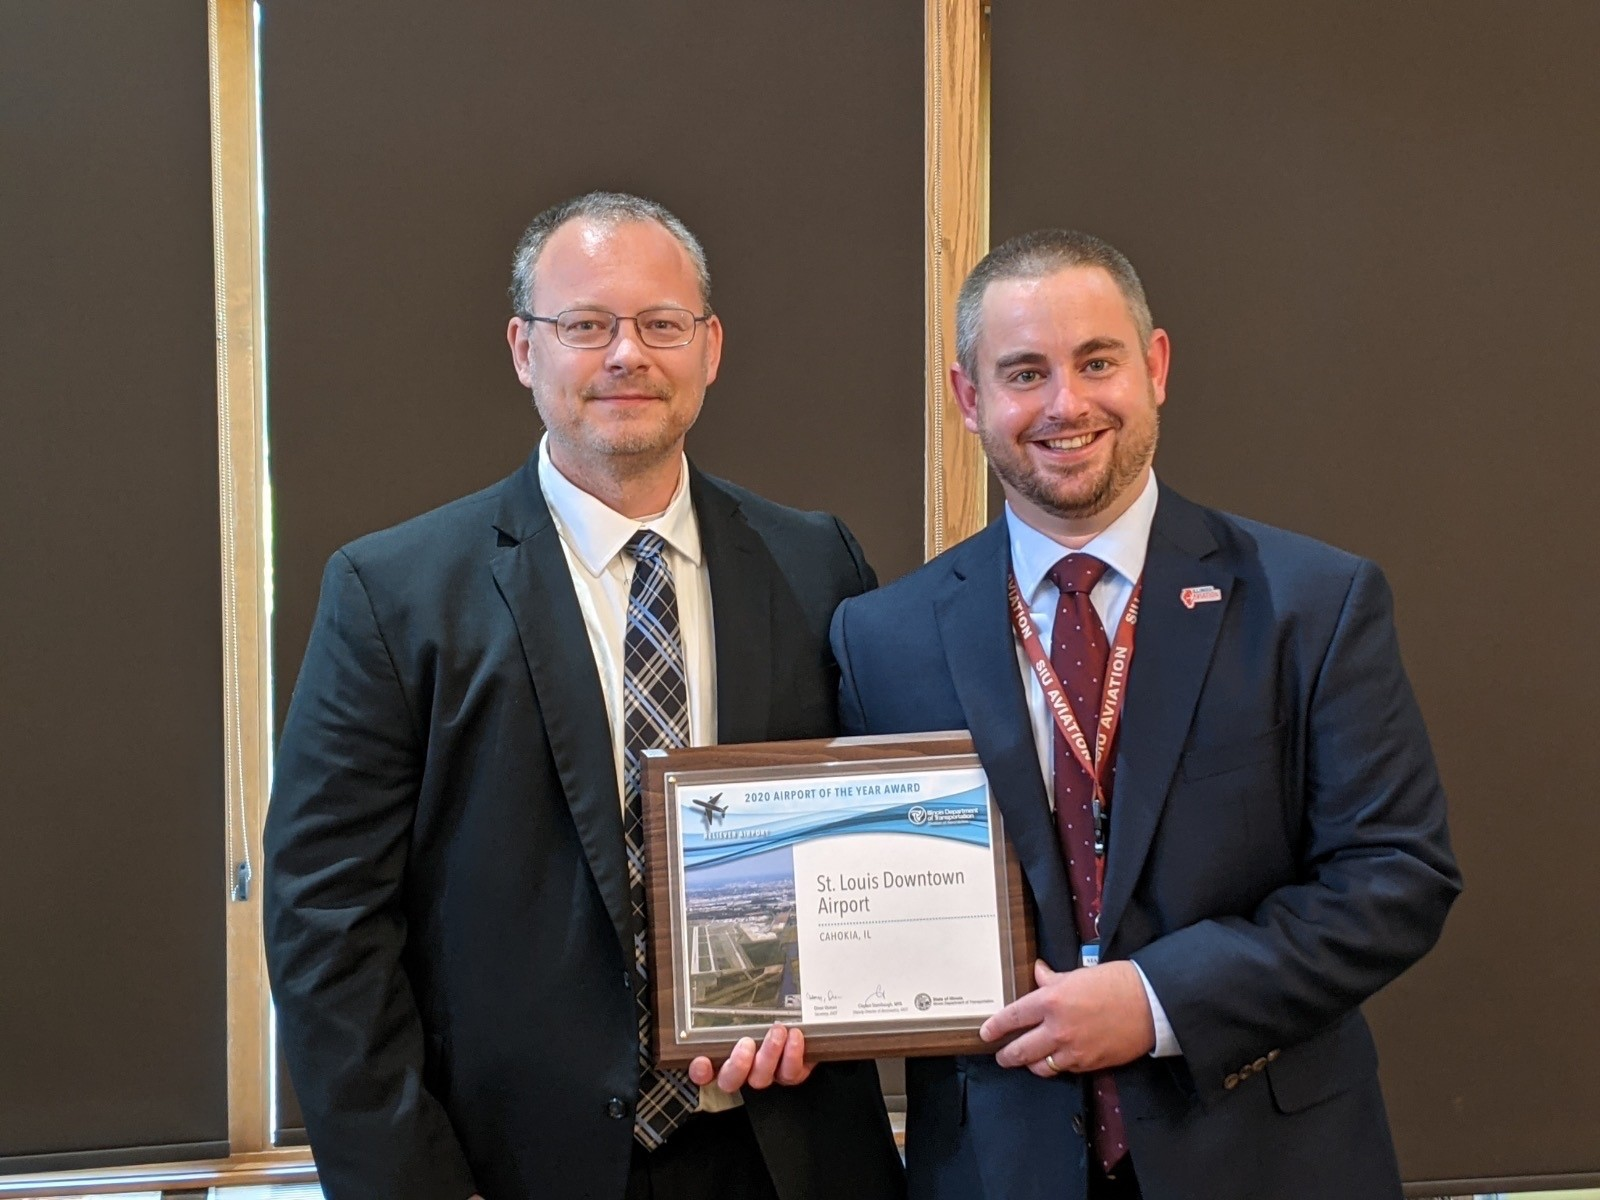 Erick Dahl, Director of St. Louis Downtown Airport (KCPS), accepts the 2020 Reliever Airport of the Year Award from Clayton Stambaugh, MPA, Deputy Director of Aeronautics for the Illinois Department of Transportation.